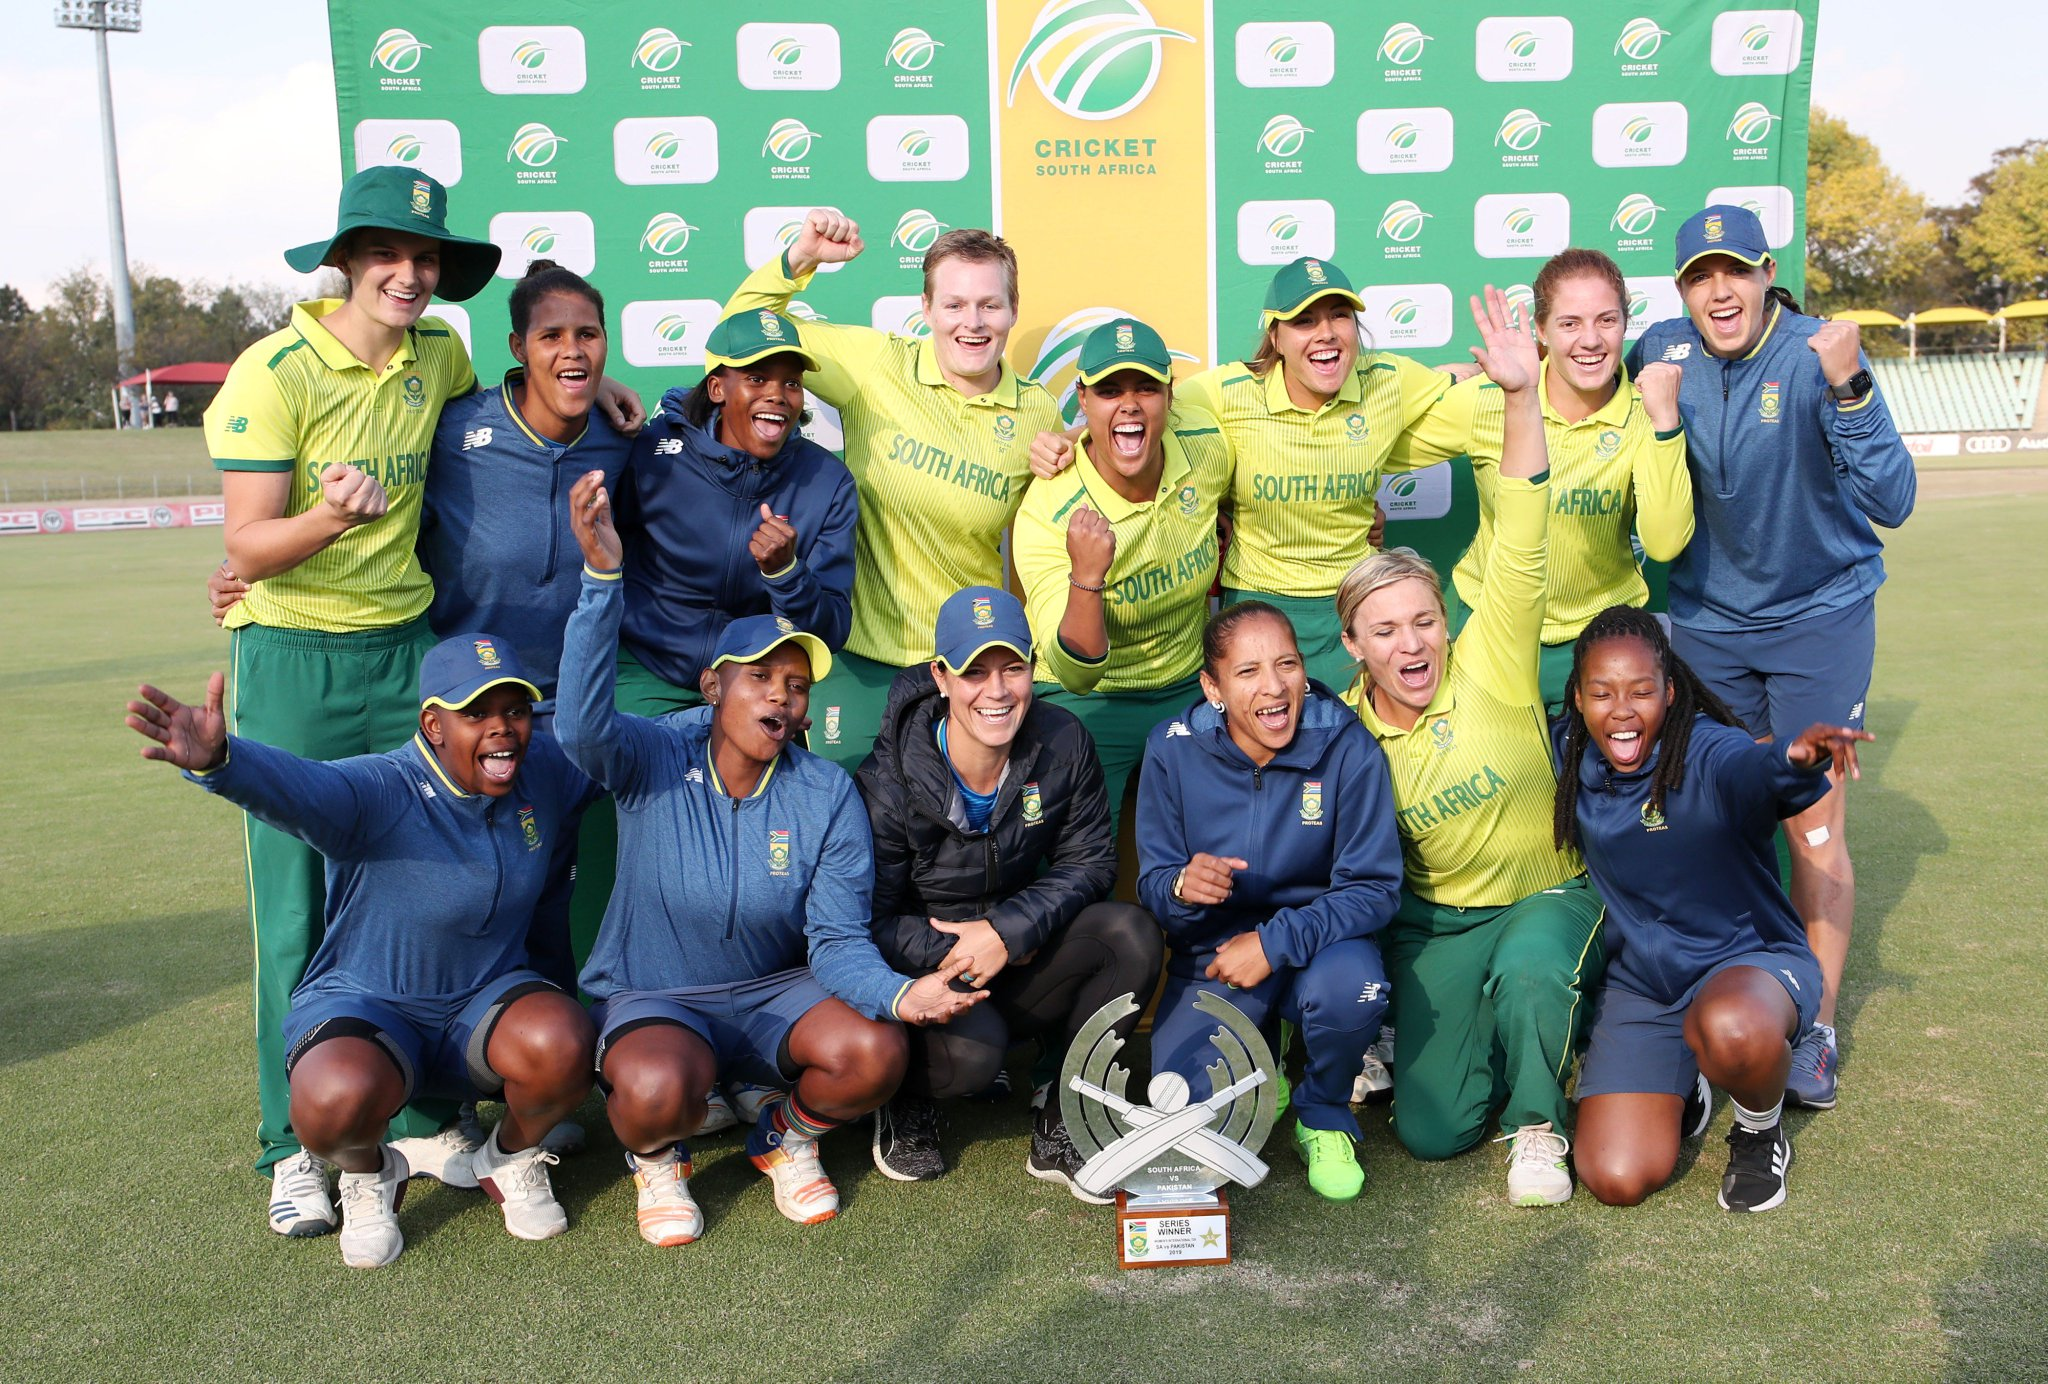 South Africa National Cricket Team Twitter Photo A